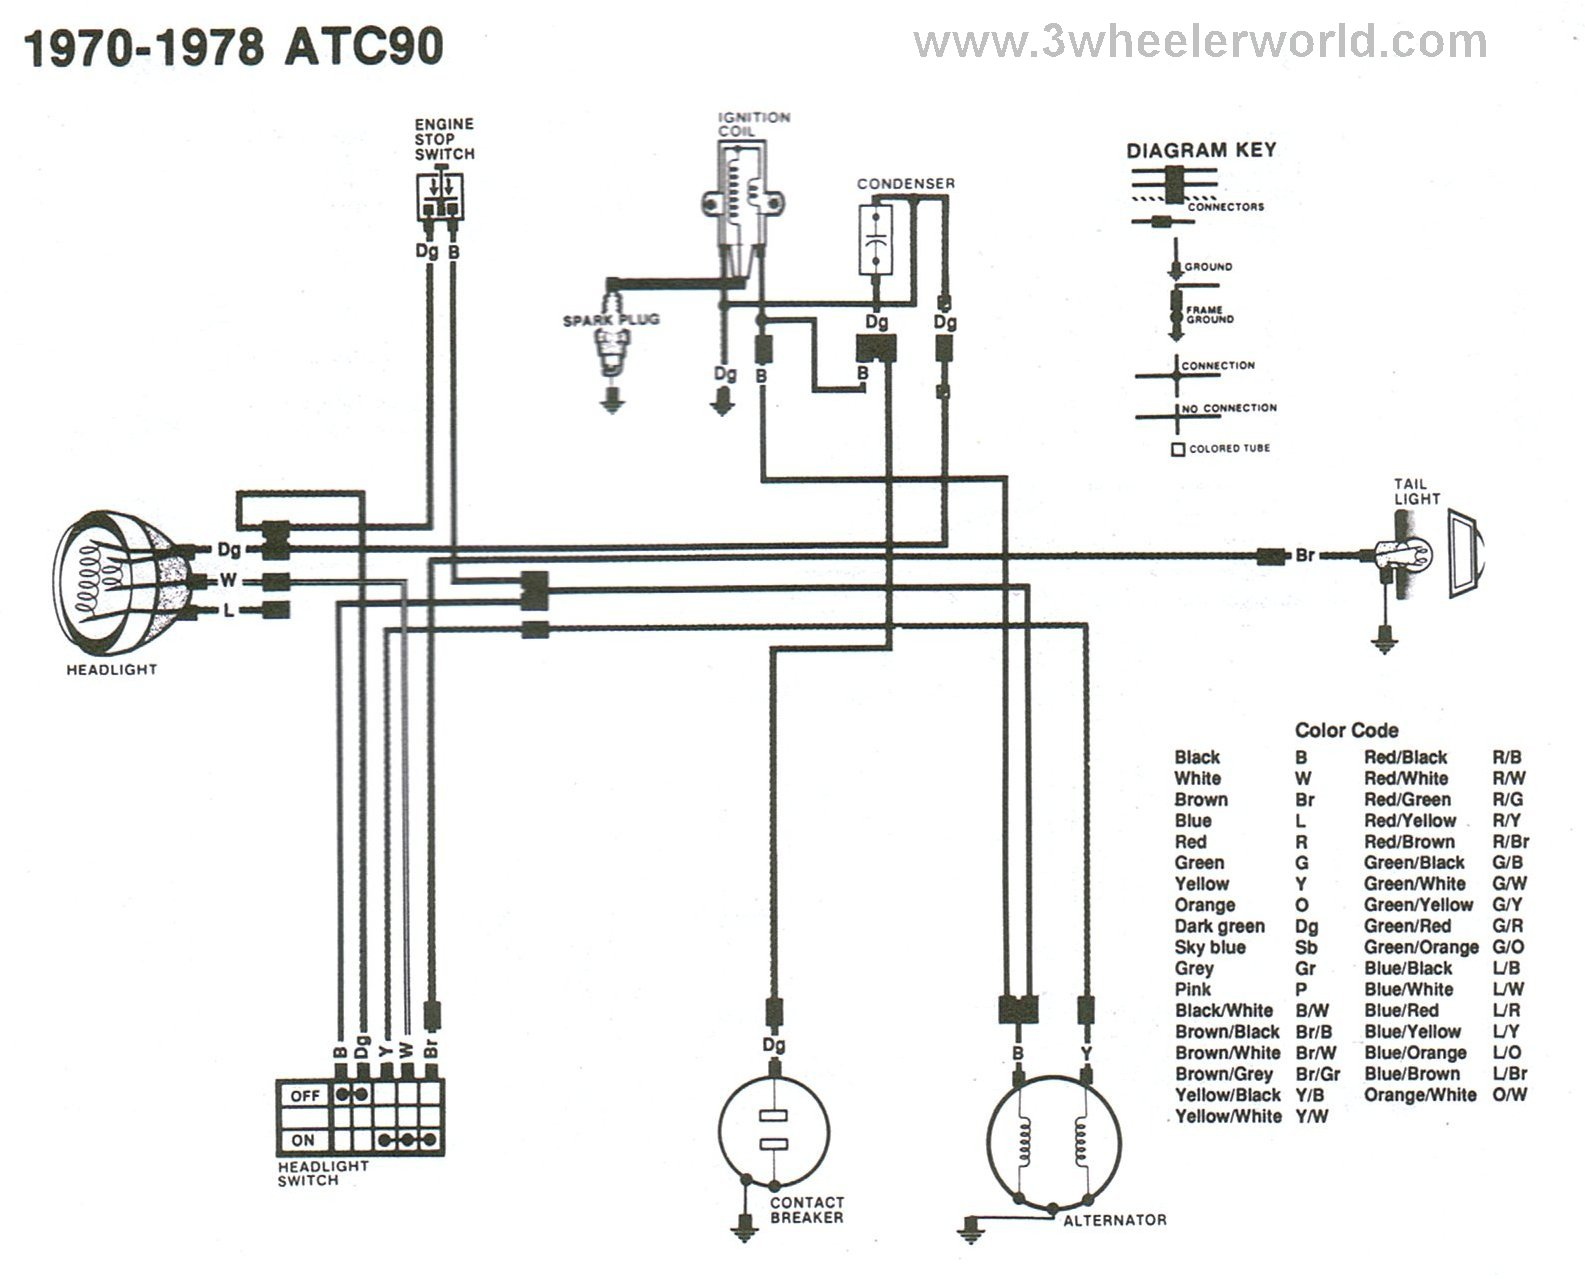 ATC90x70Thru78 3 wheeler world tech help honda wiring diagrams honda 90 atc wiring at crackthecode.co